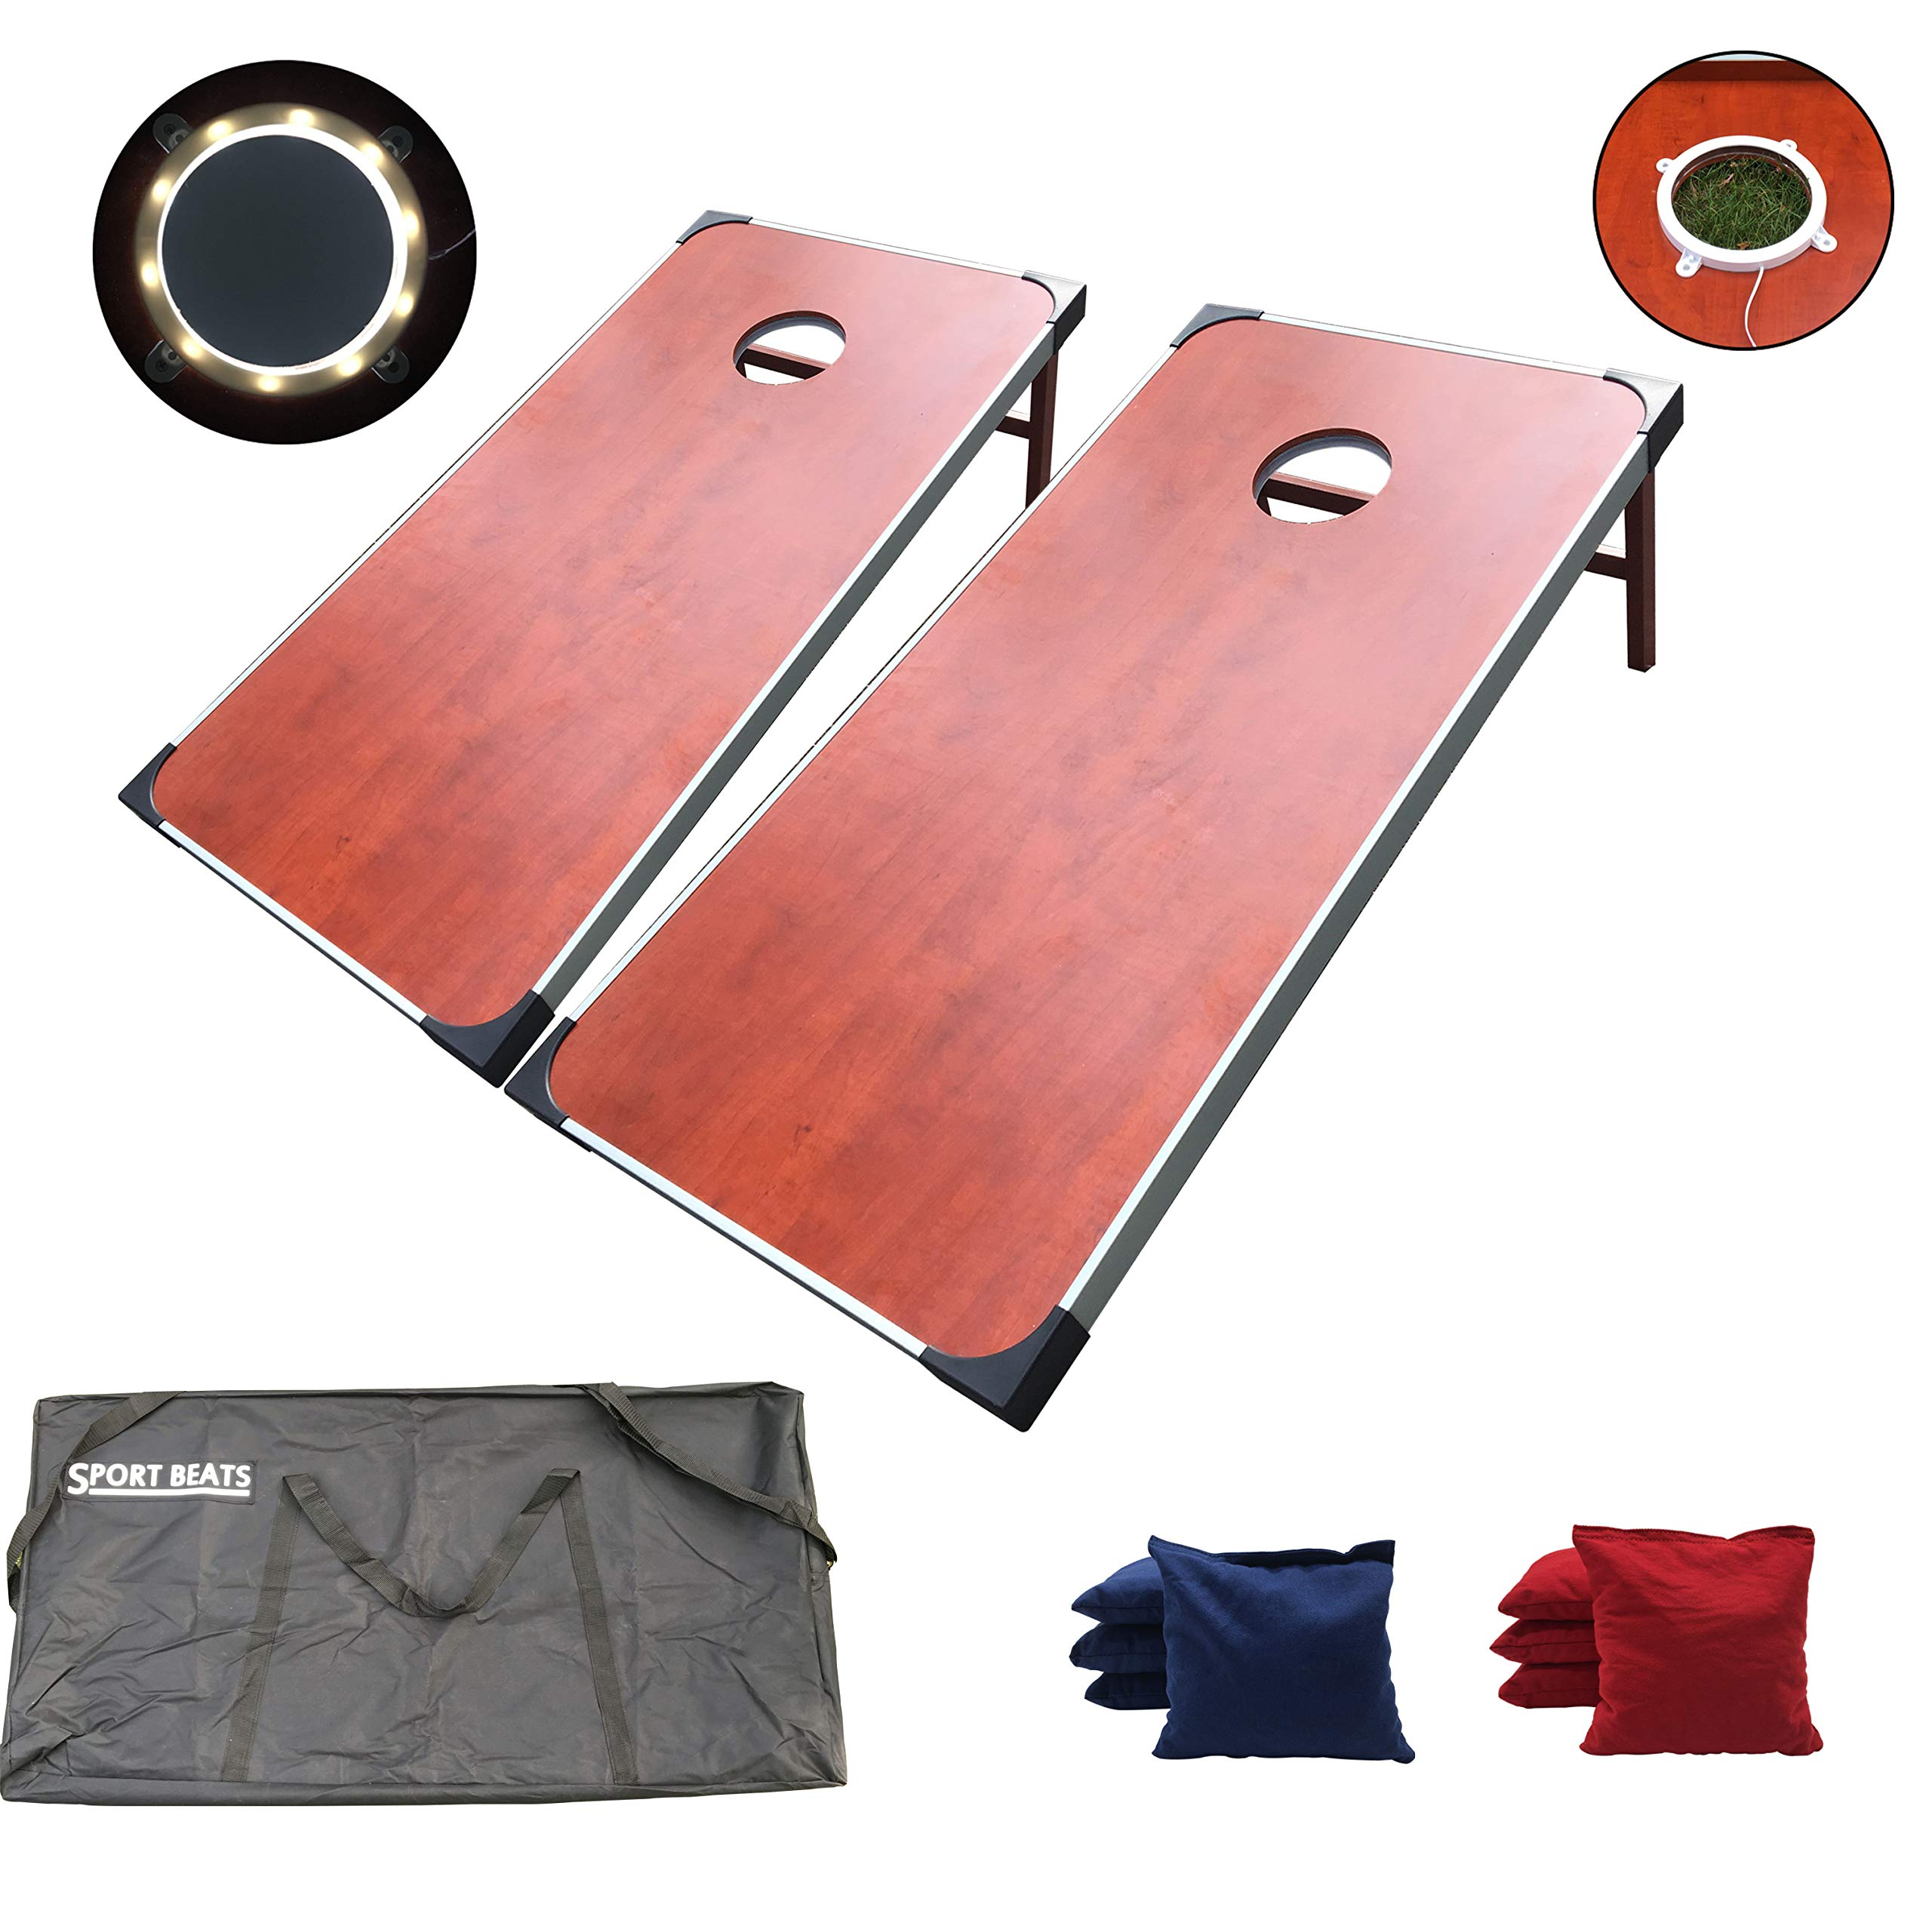 SPORT BEATS Regulation Cornhole Boards with Lights Aluminum Framed Cornhole Set - 2 x 4 Ft Tournament Size Wood Corn Hole Board Game Carrying Bag Included